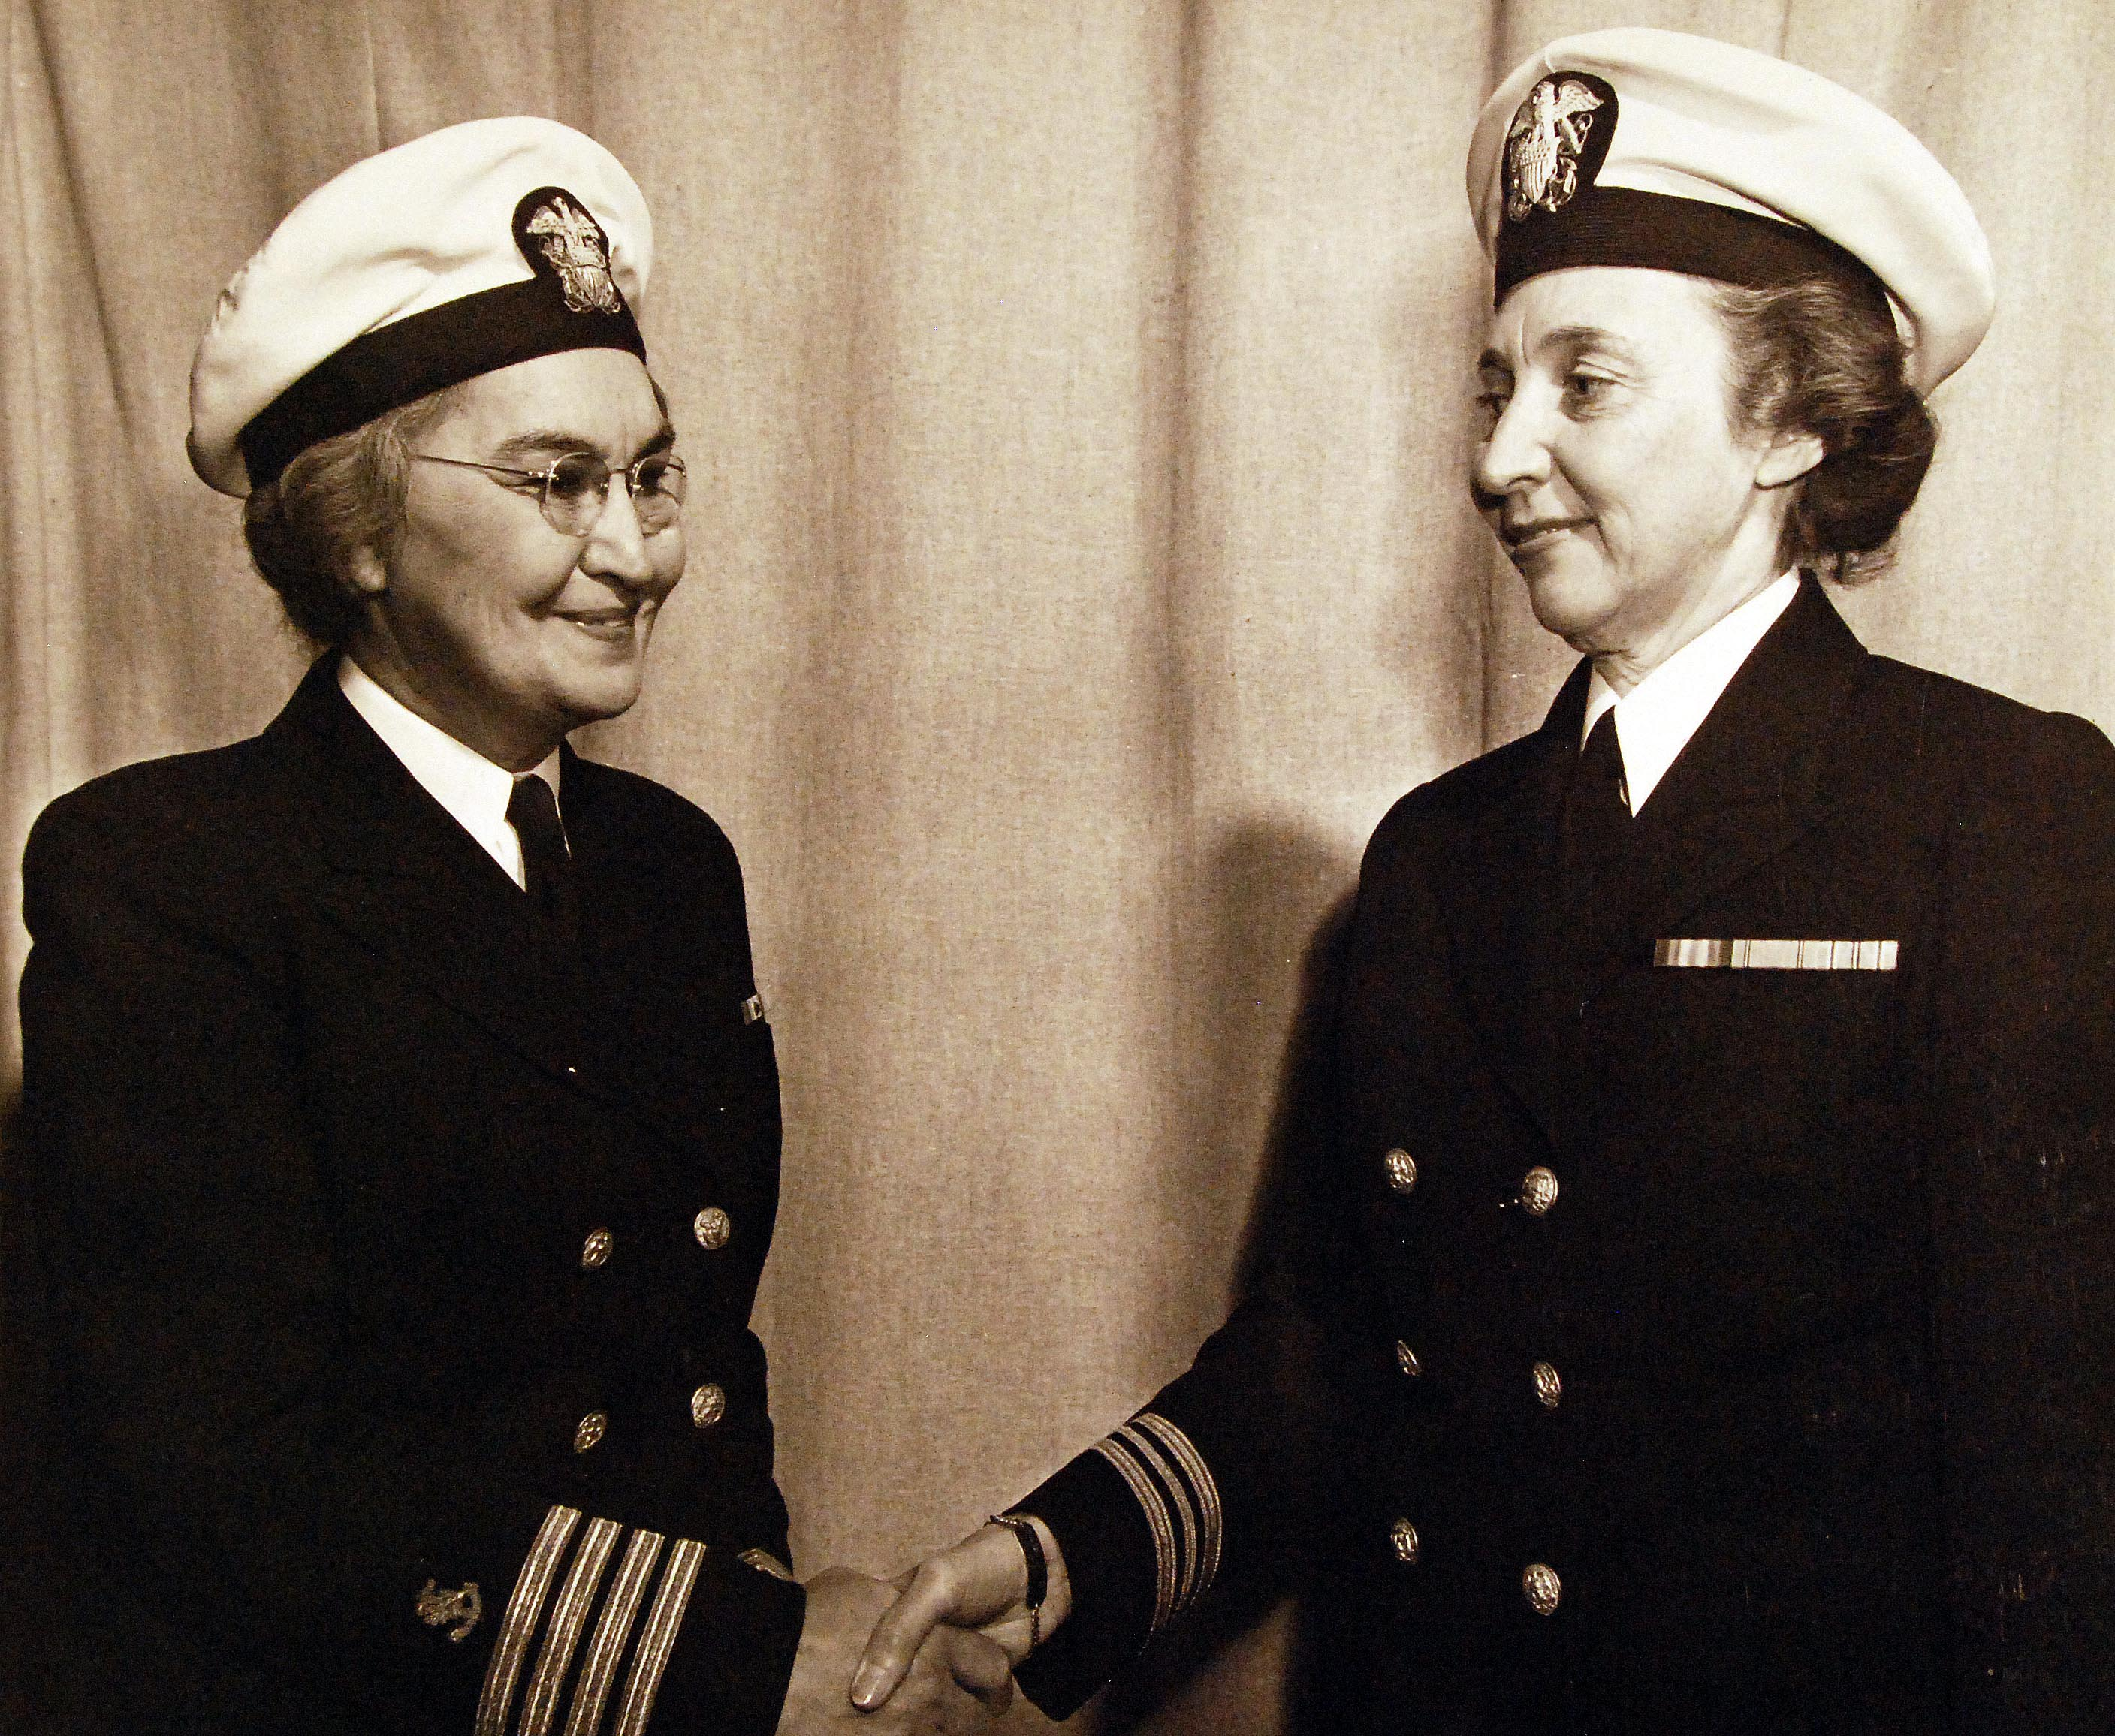 Fifth and Sixth Navy Nurse Corps Superintendents